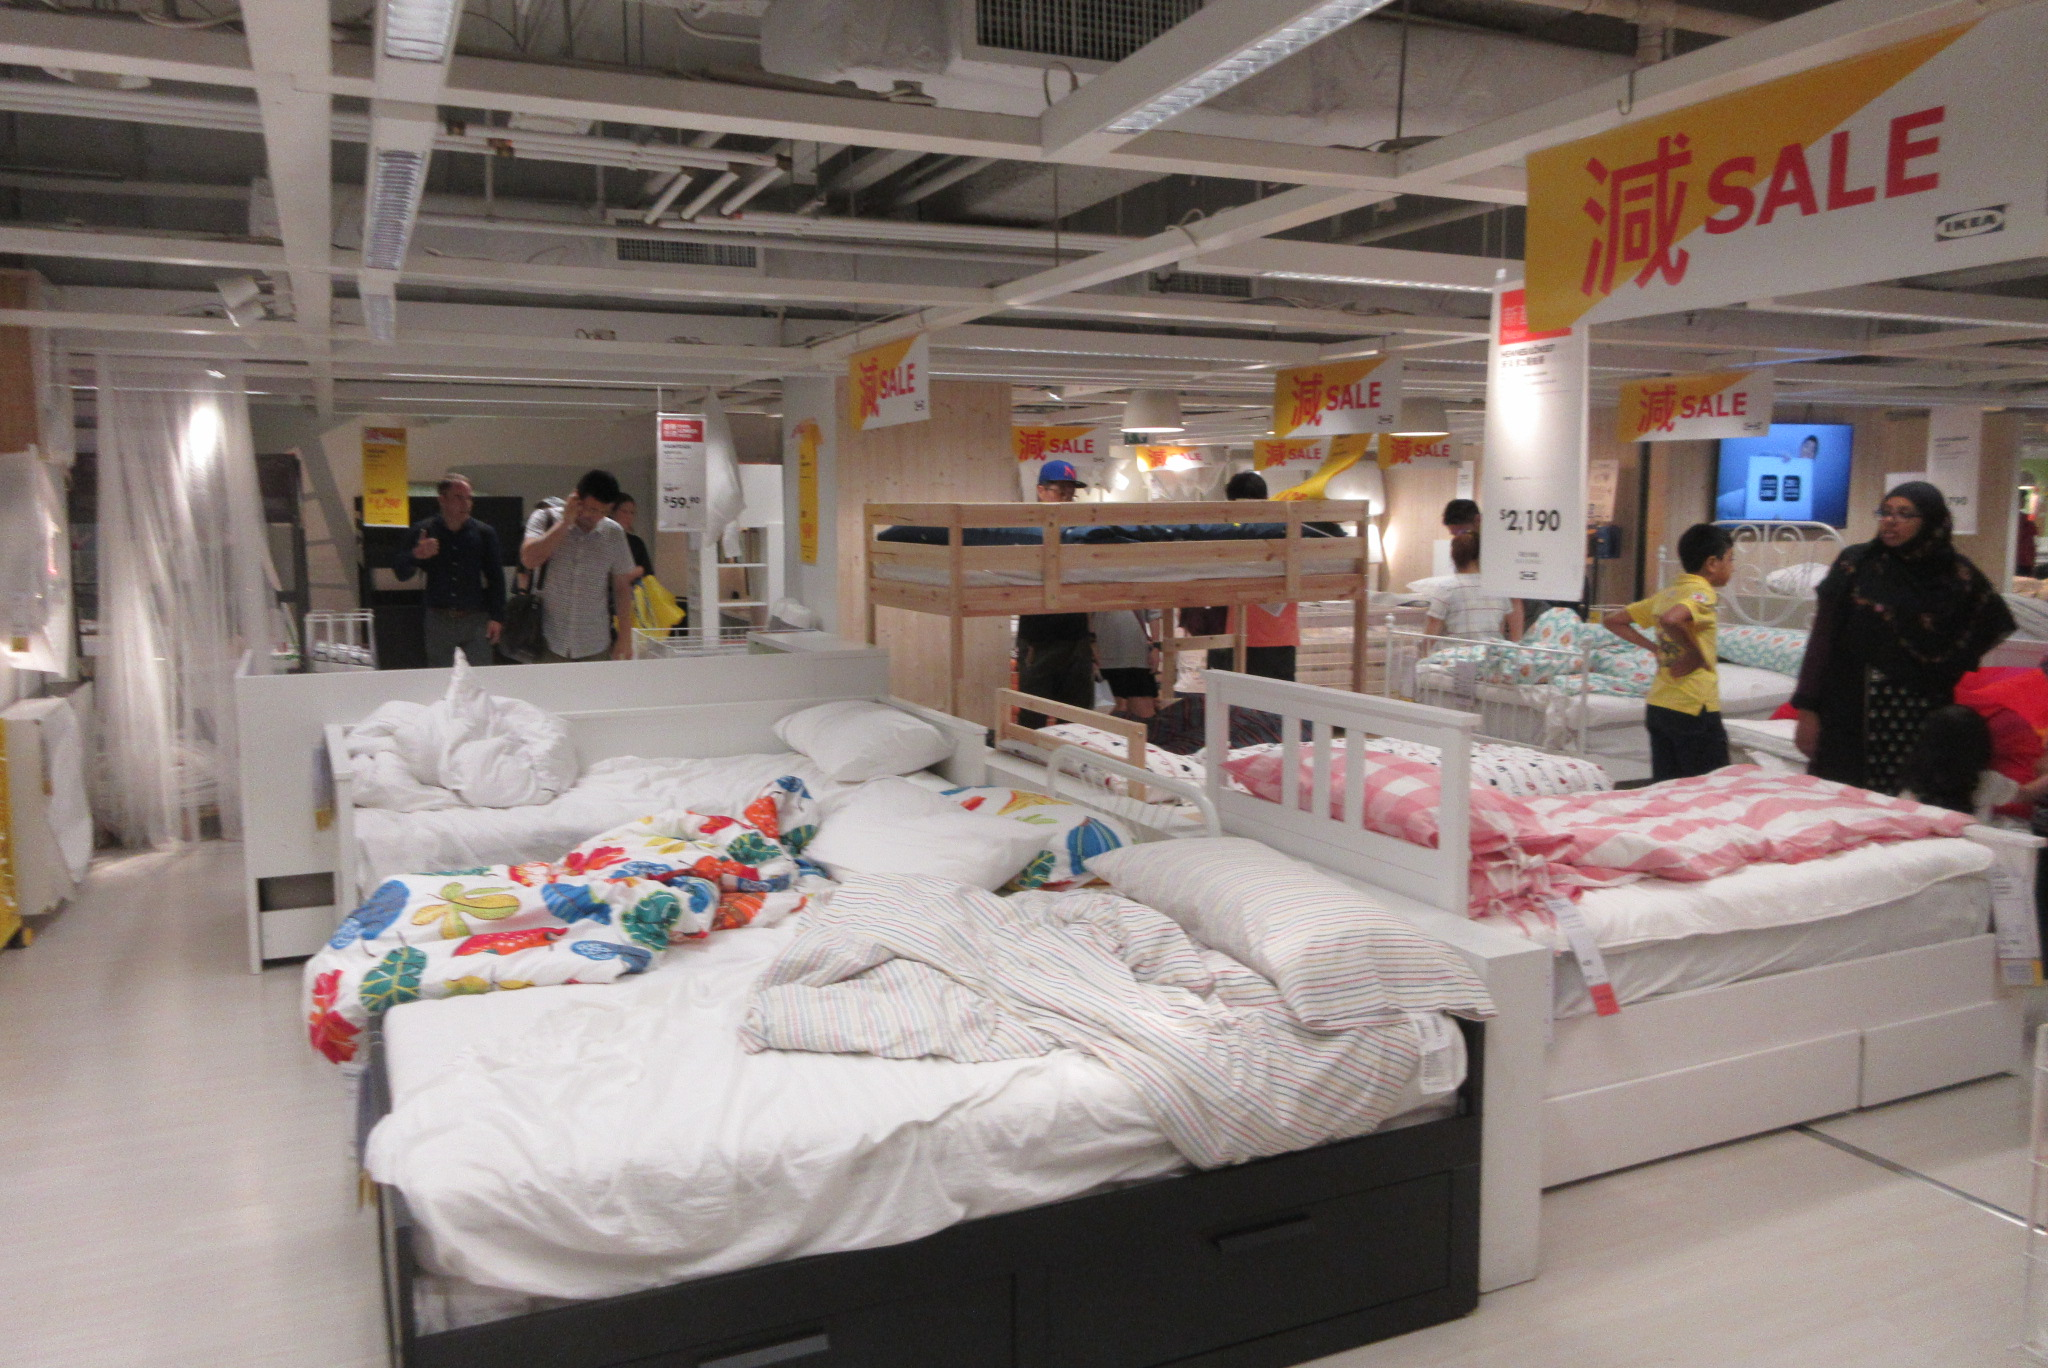 File HK 銅鑼灣 CWB å œå ¶å ¶å±… IKEA shop bedroom furniture July 2017